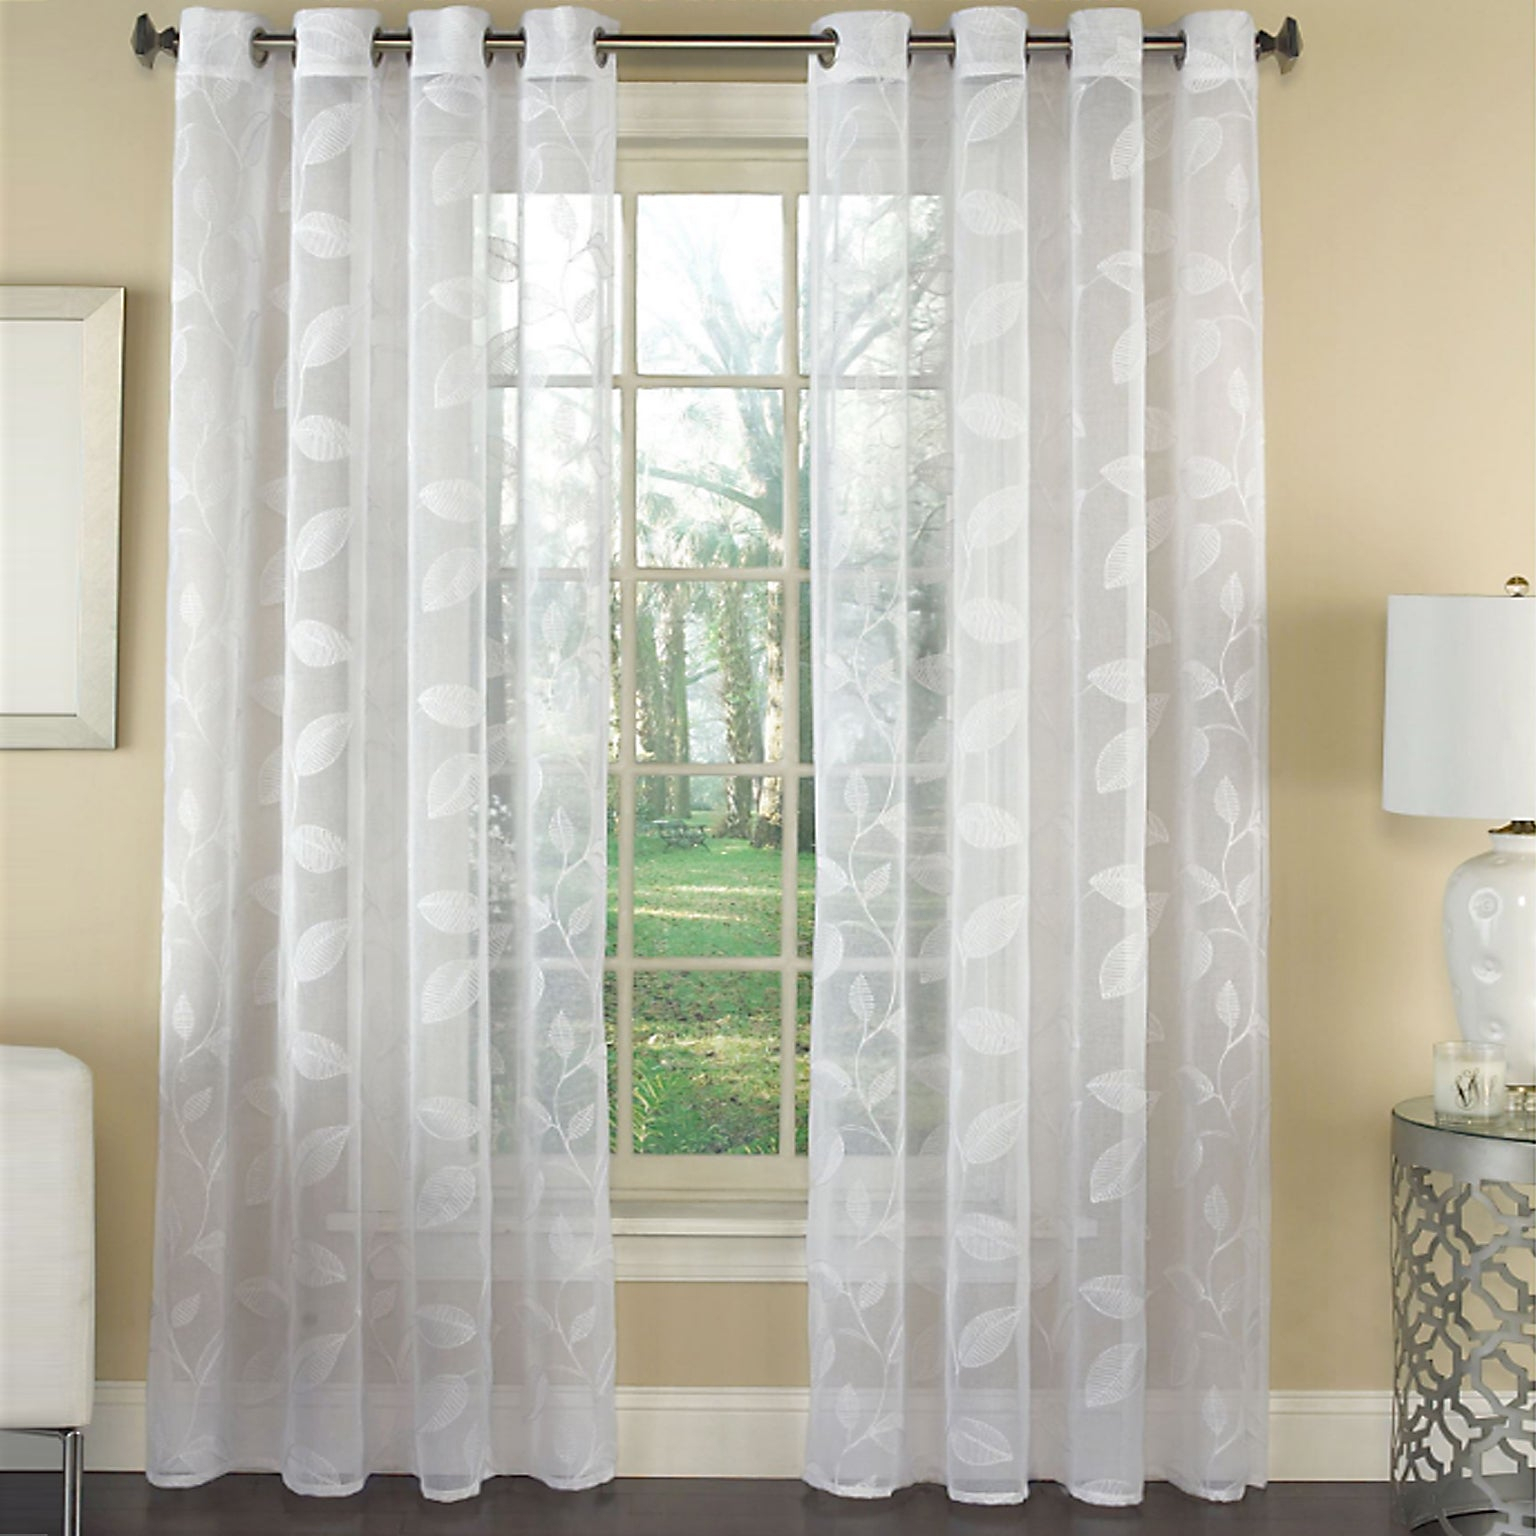 Avery Semi Sheer Embroidered Leaf Faux Linen Grommet Window Curtain Panel – 84x53 For Kida Embroidered Sheer Curtain Panels (View 3 of 20)